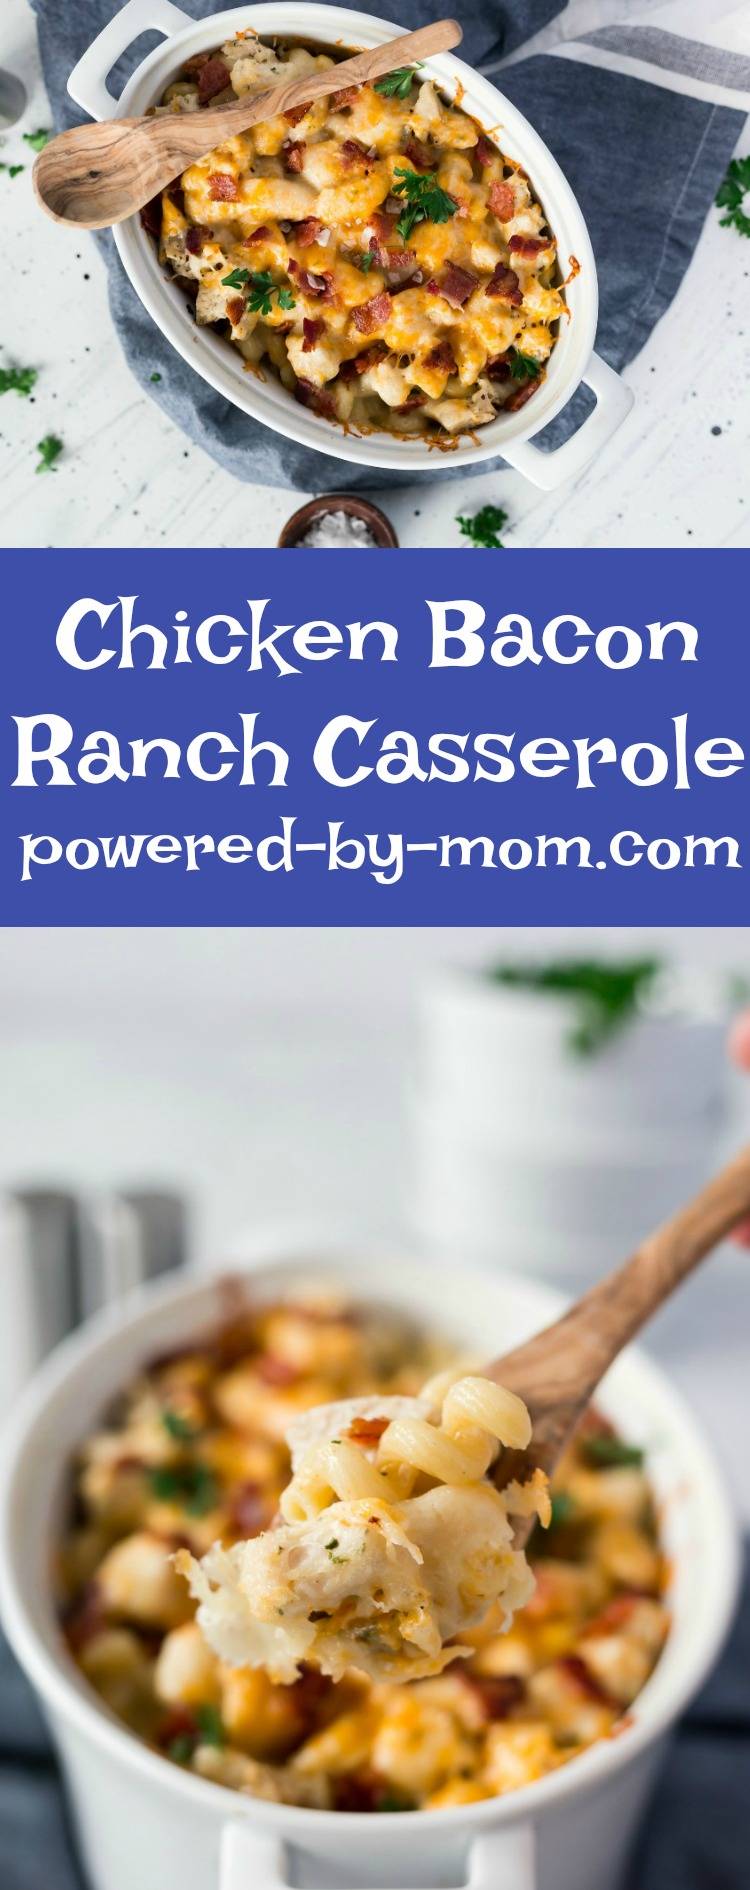 Chicken Bacon Ranch Casserole Recipe